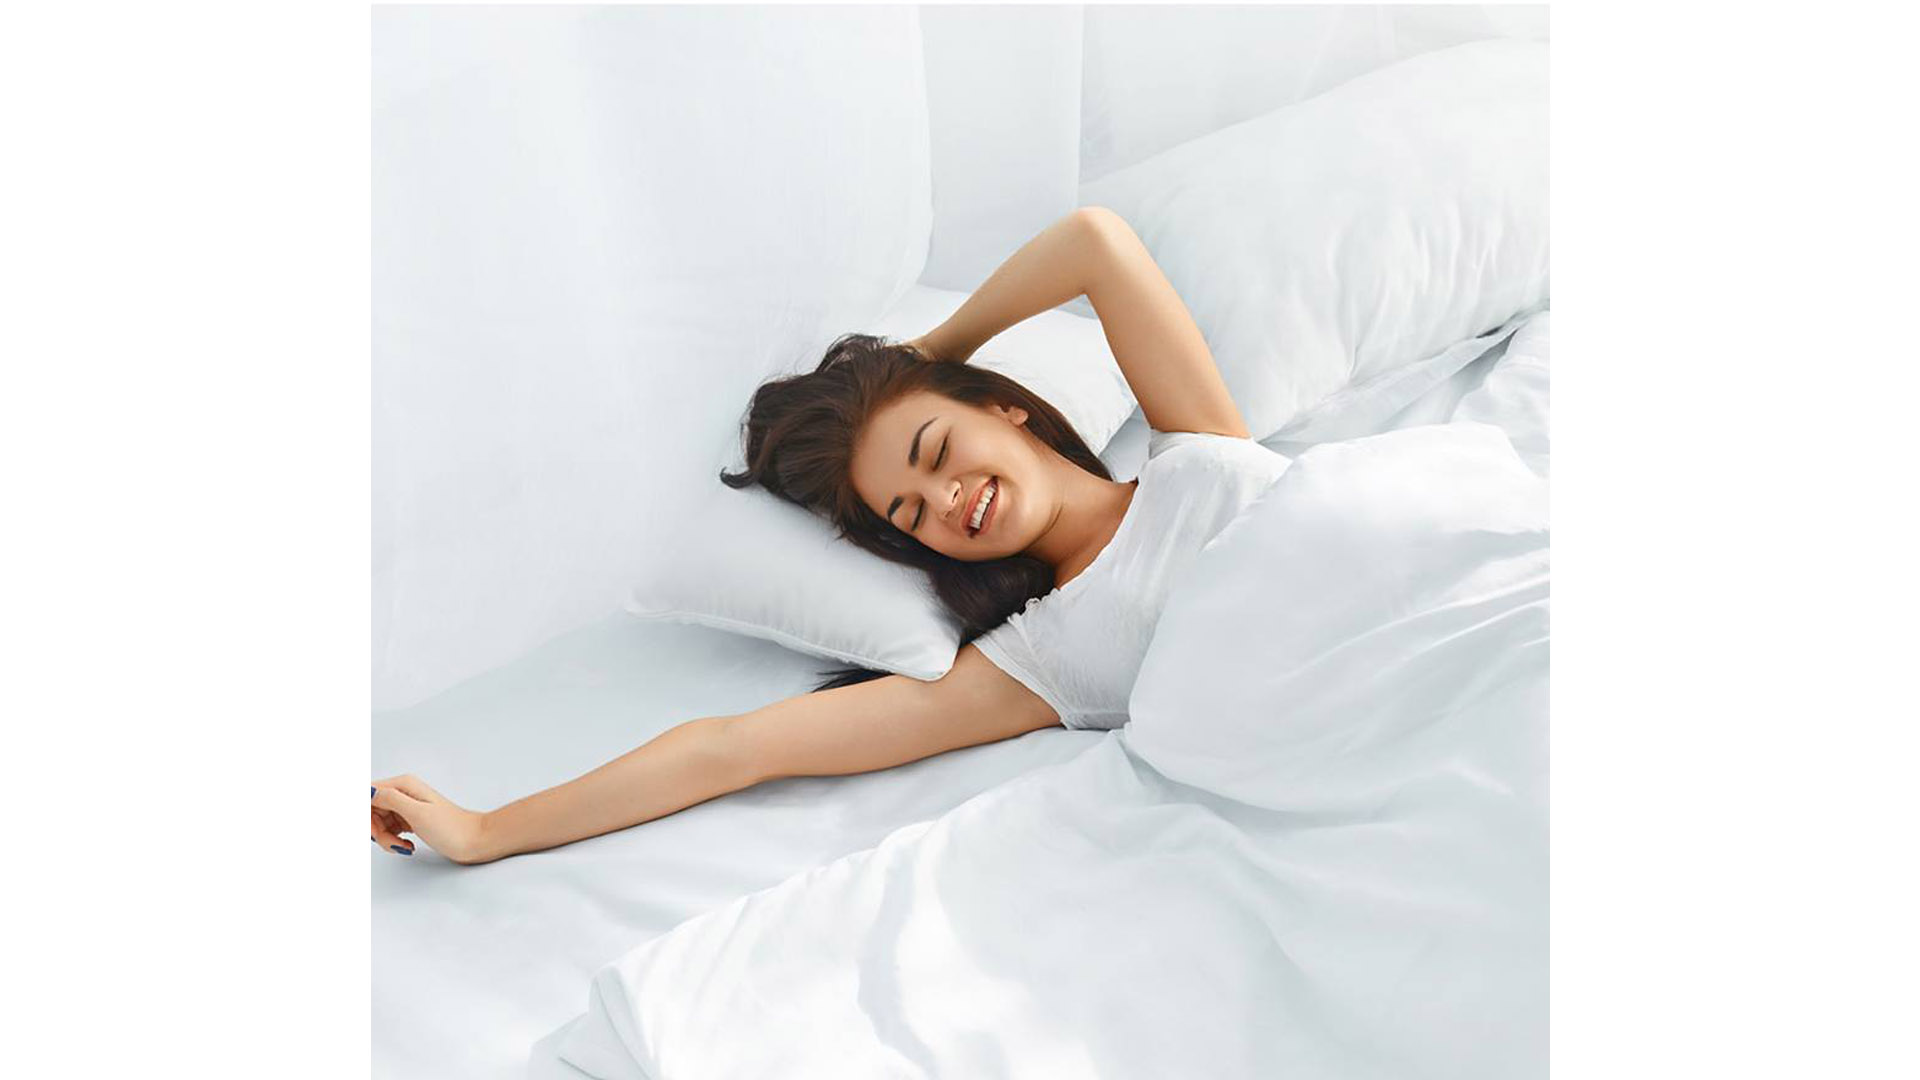 Sleeping Pose Is One Of The 5 Tips To Get The Perfect Mattress on Mattress Firm